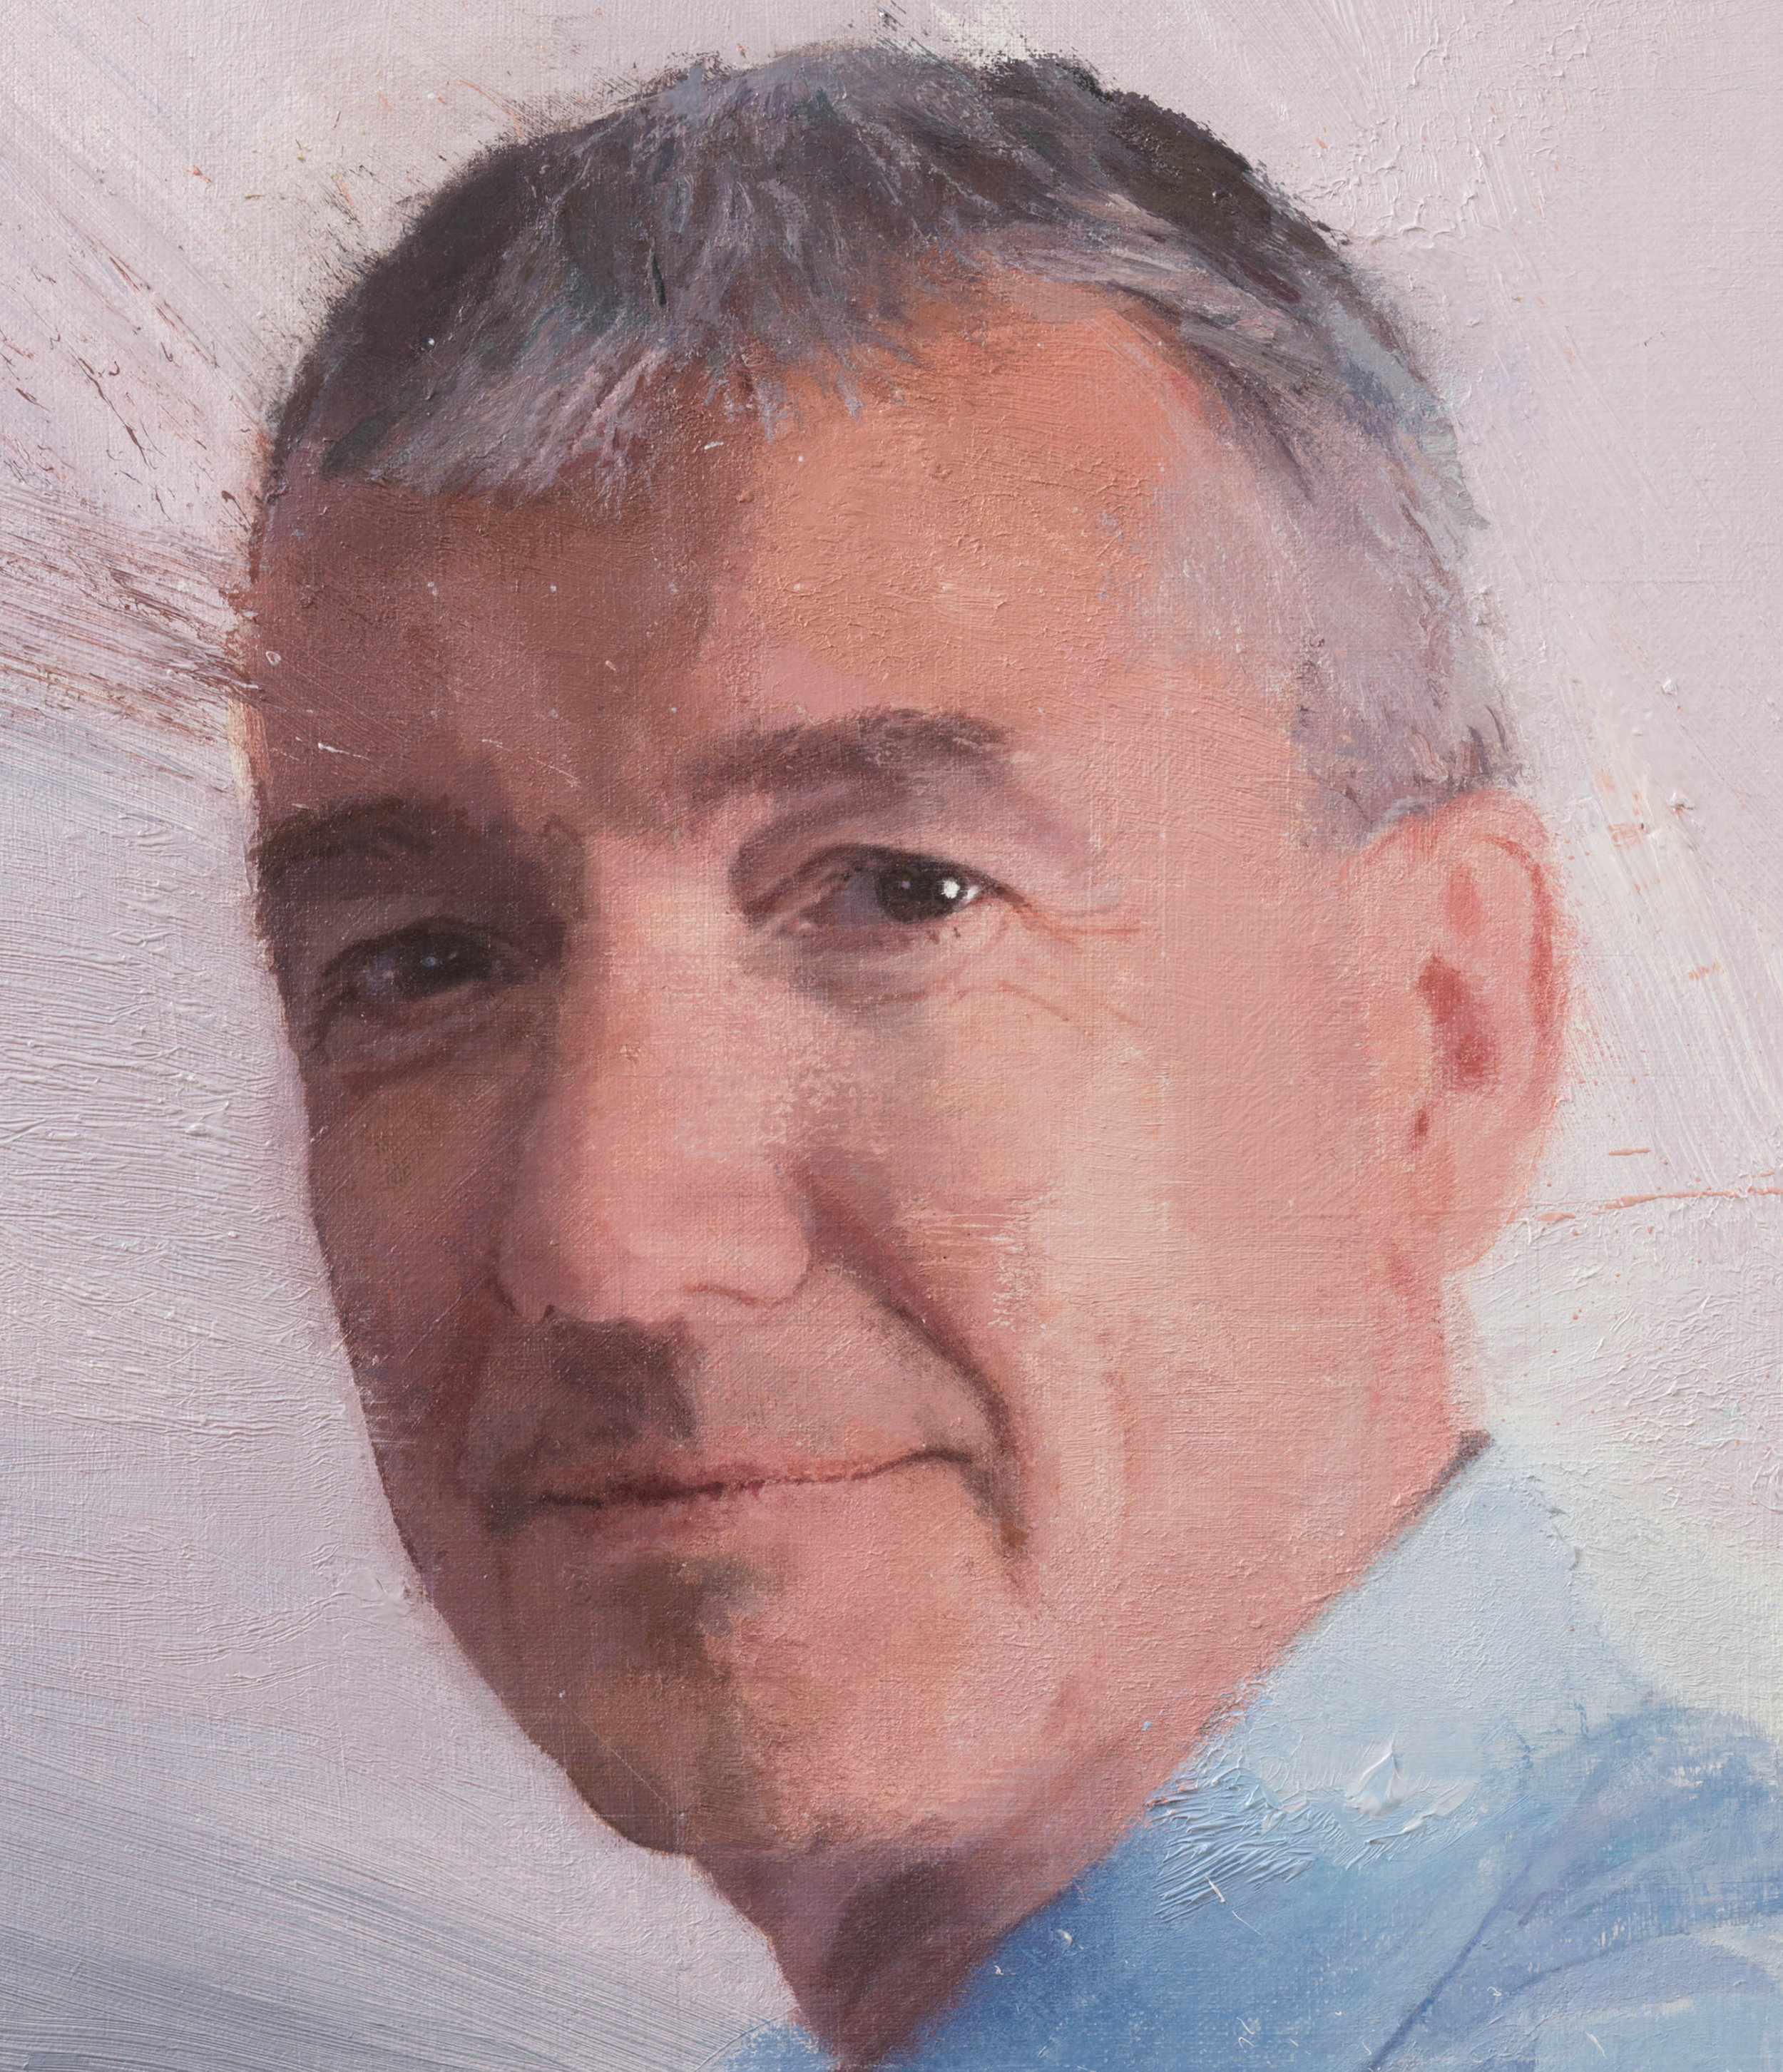 Detail of the final portrait of David Nish